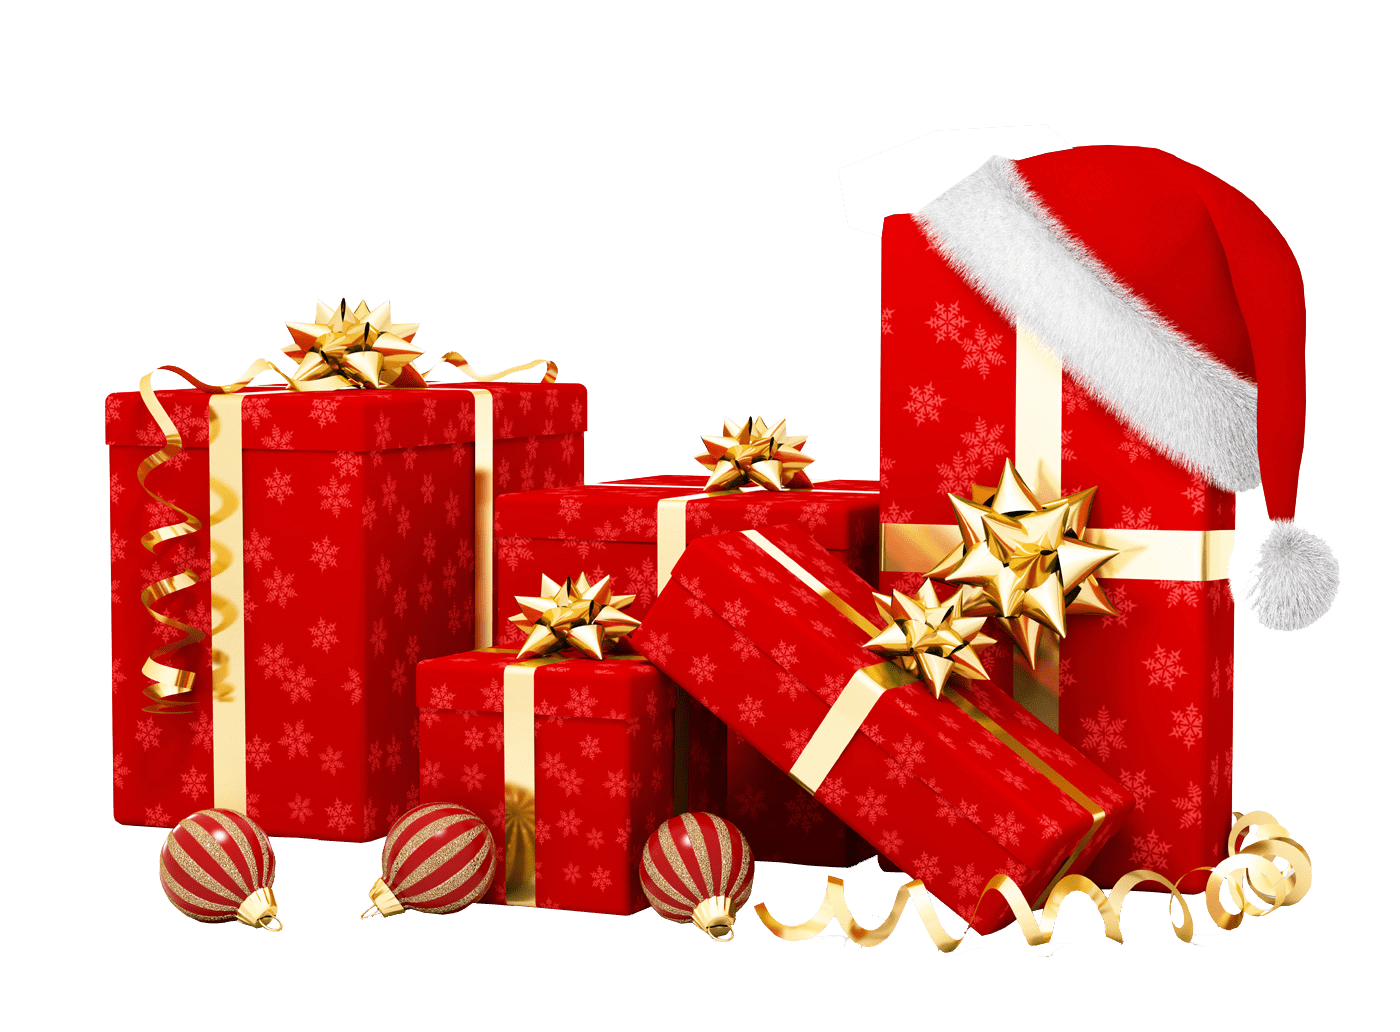 Christmas Presents Png.Christmas Gifts Transparent Png Stickpng